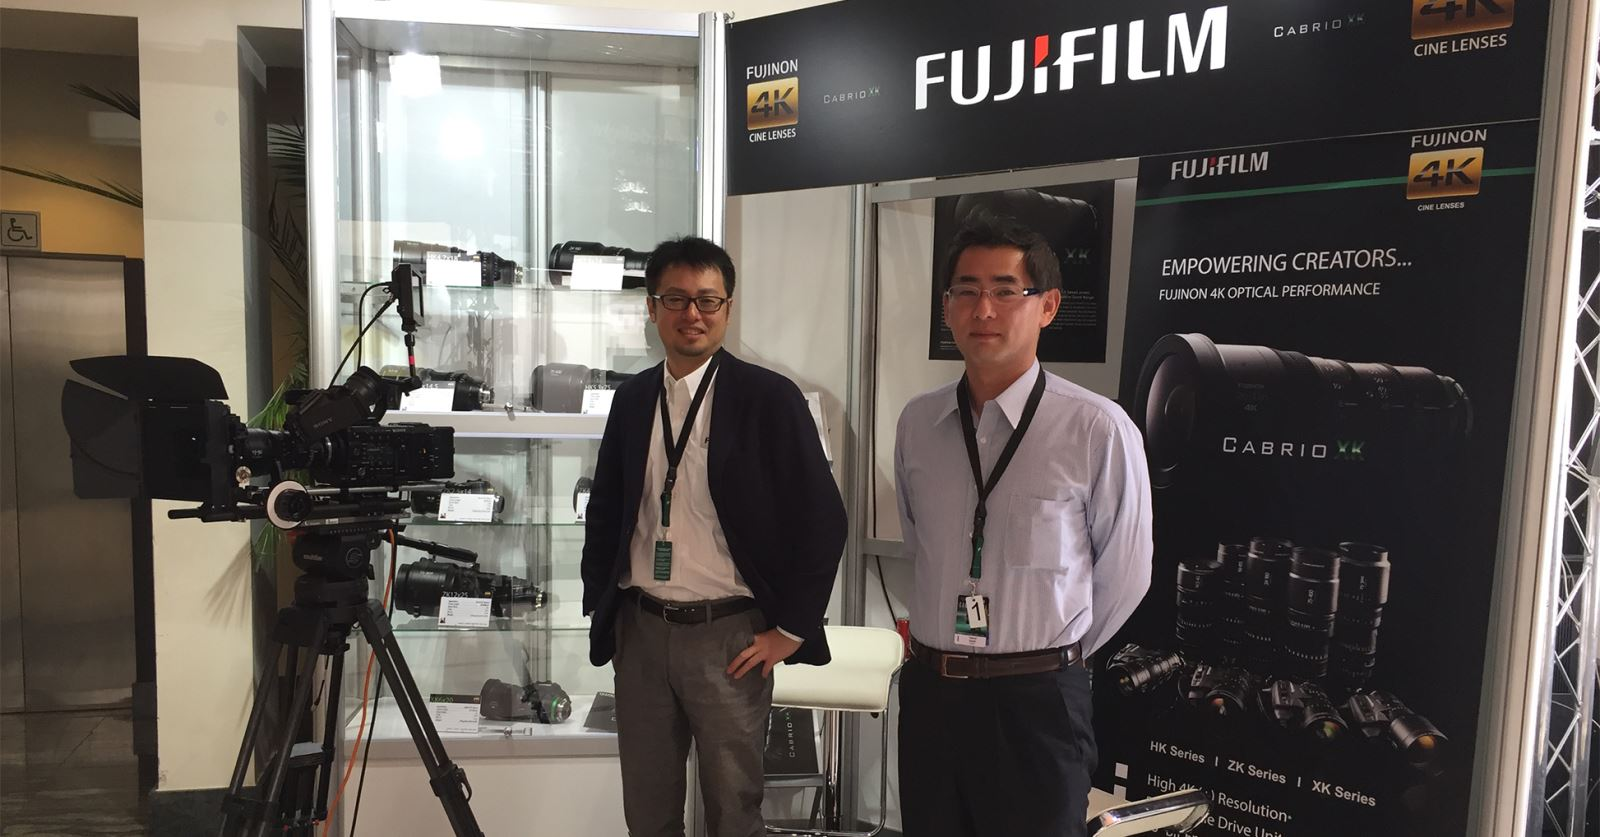 Representatives from GTC sponsors Fujinon at the Camerimage exhibition in Bydgoszcz, Poland